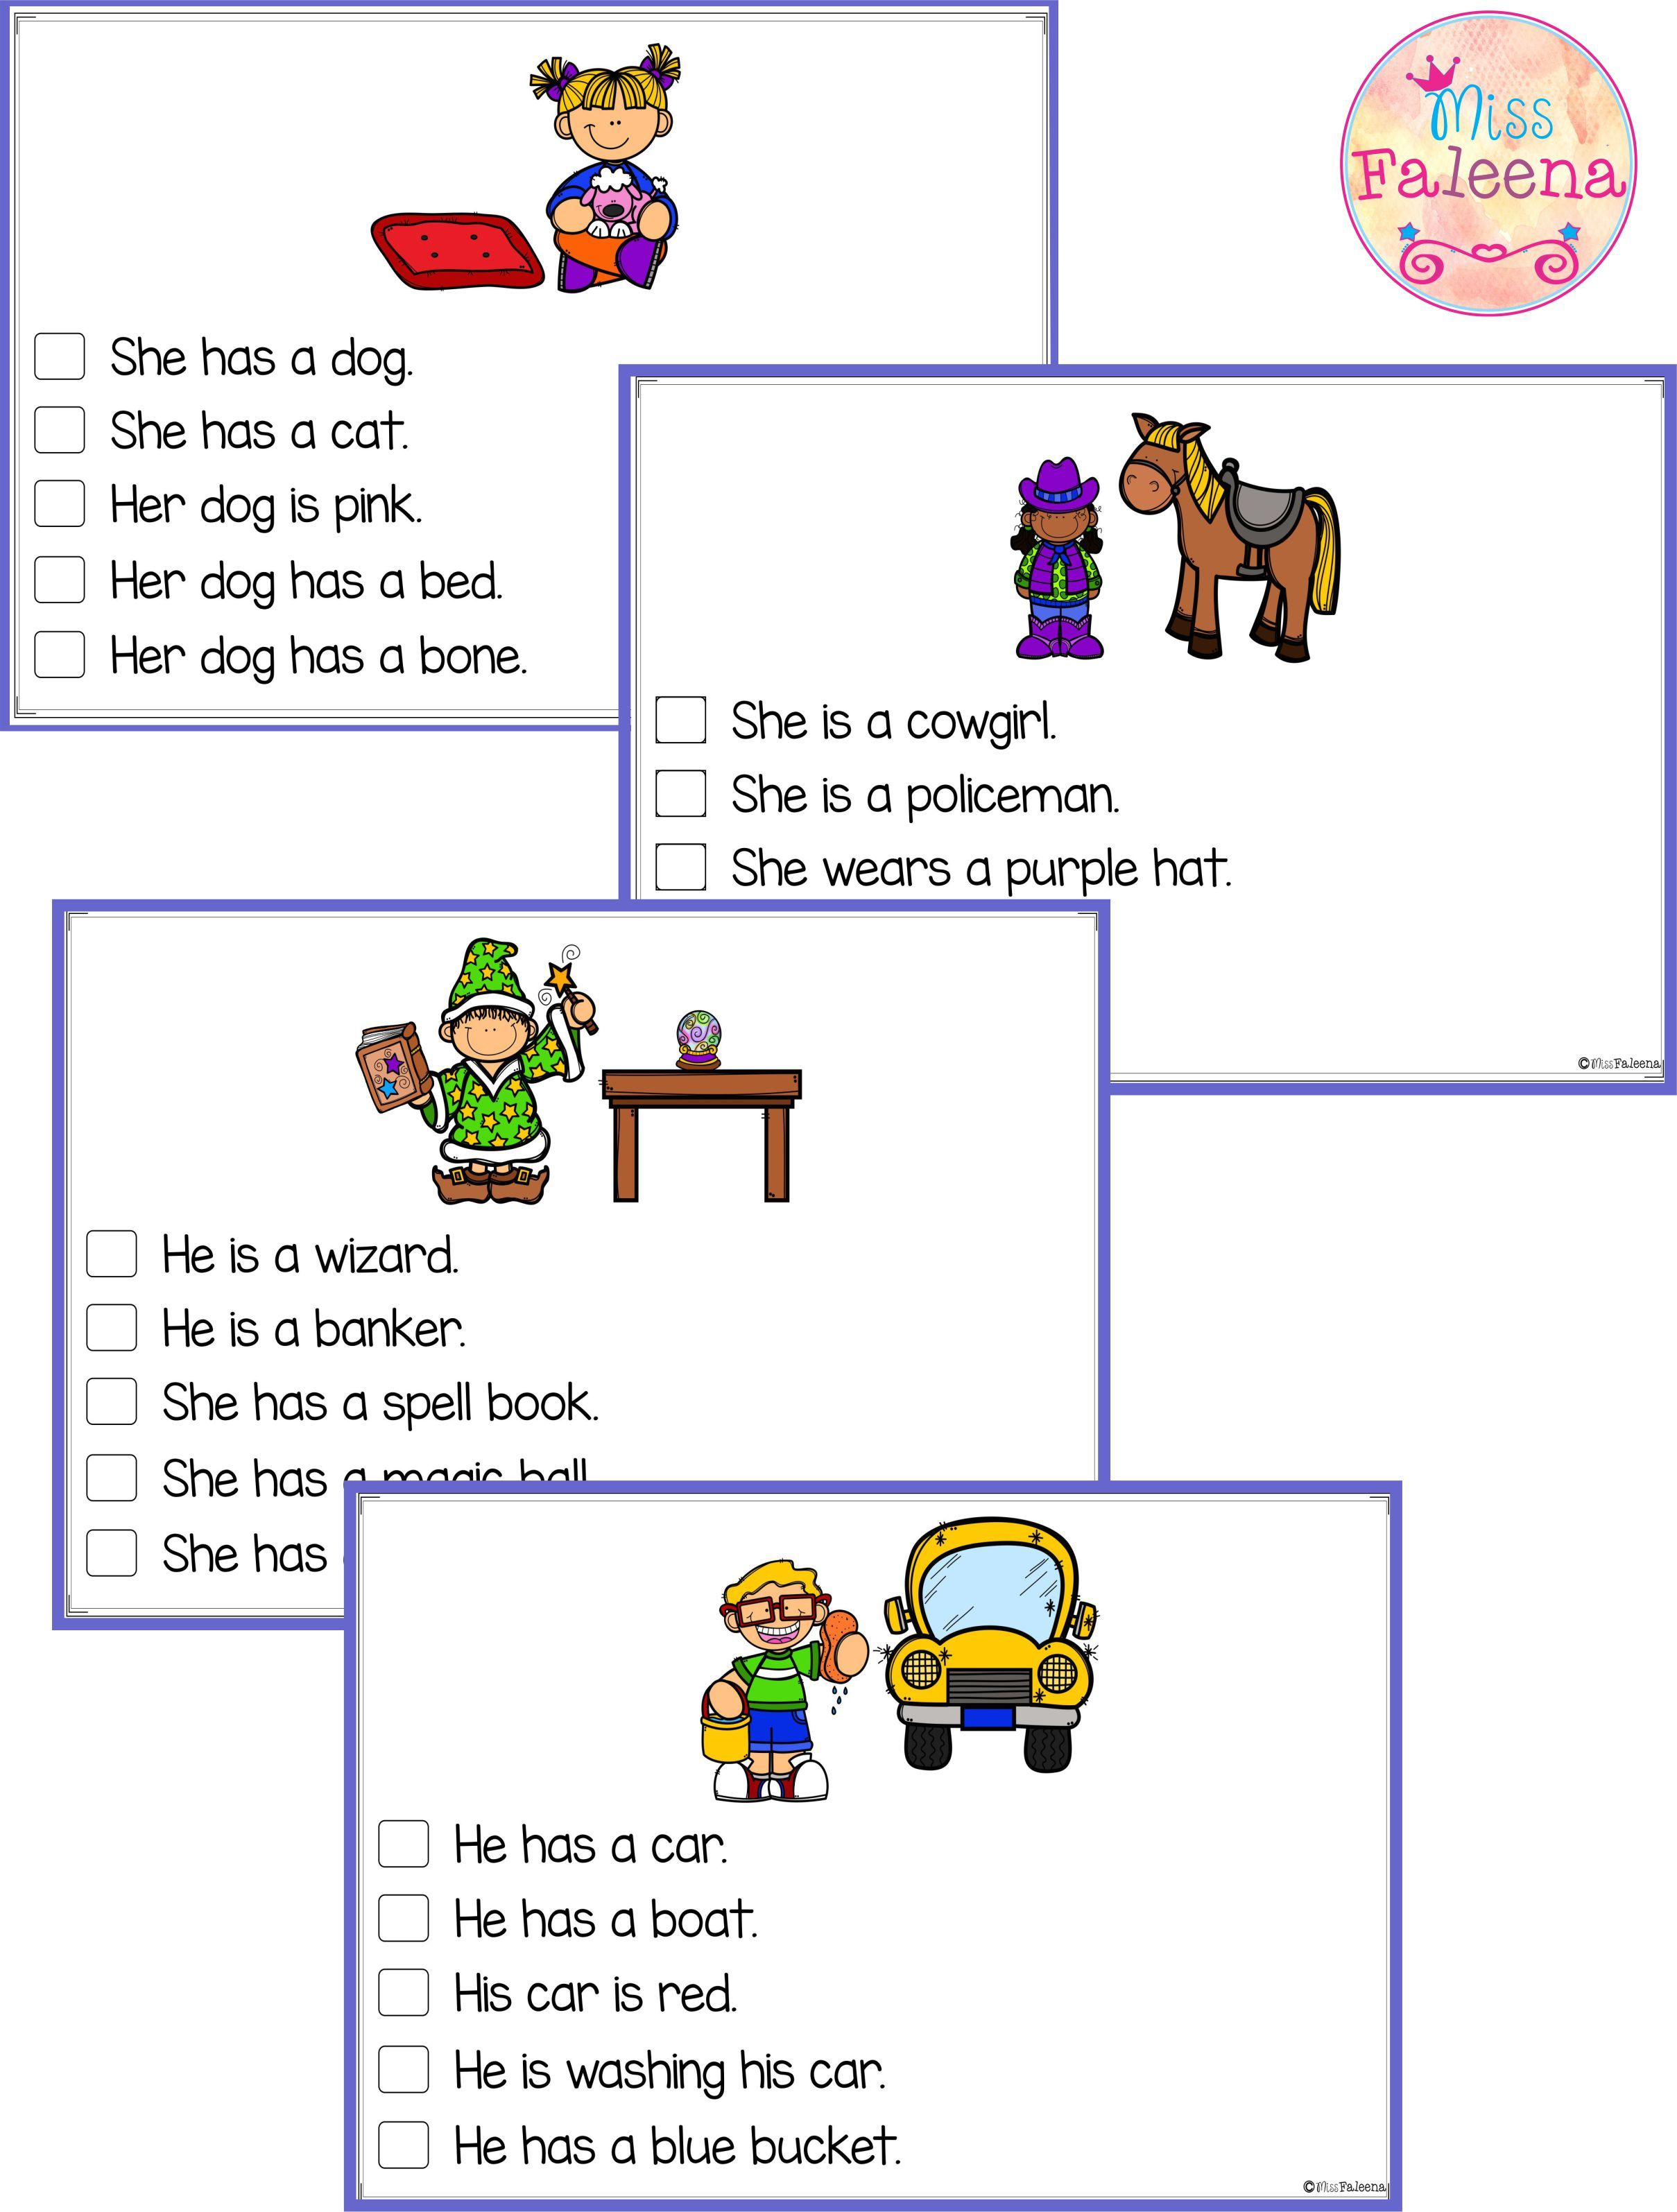 Free Picture Comprehension Cards And Worksheets There Are 4 Cards And 4 Worksheets Of Picture Com Picture Comprehension Phonics Free Speech Therapy Activities [ 3190 x 2418 Pixel ]